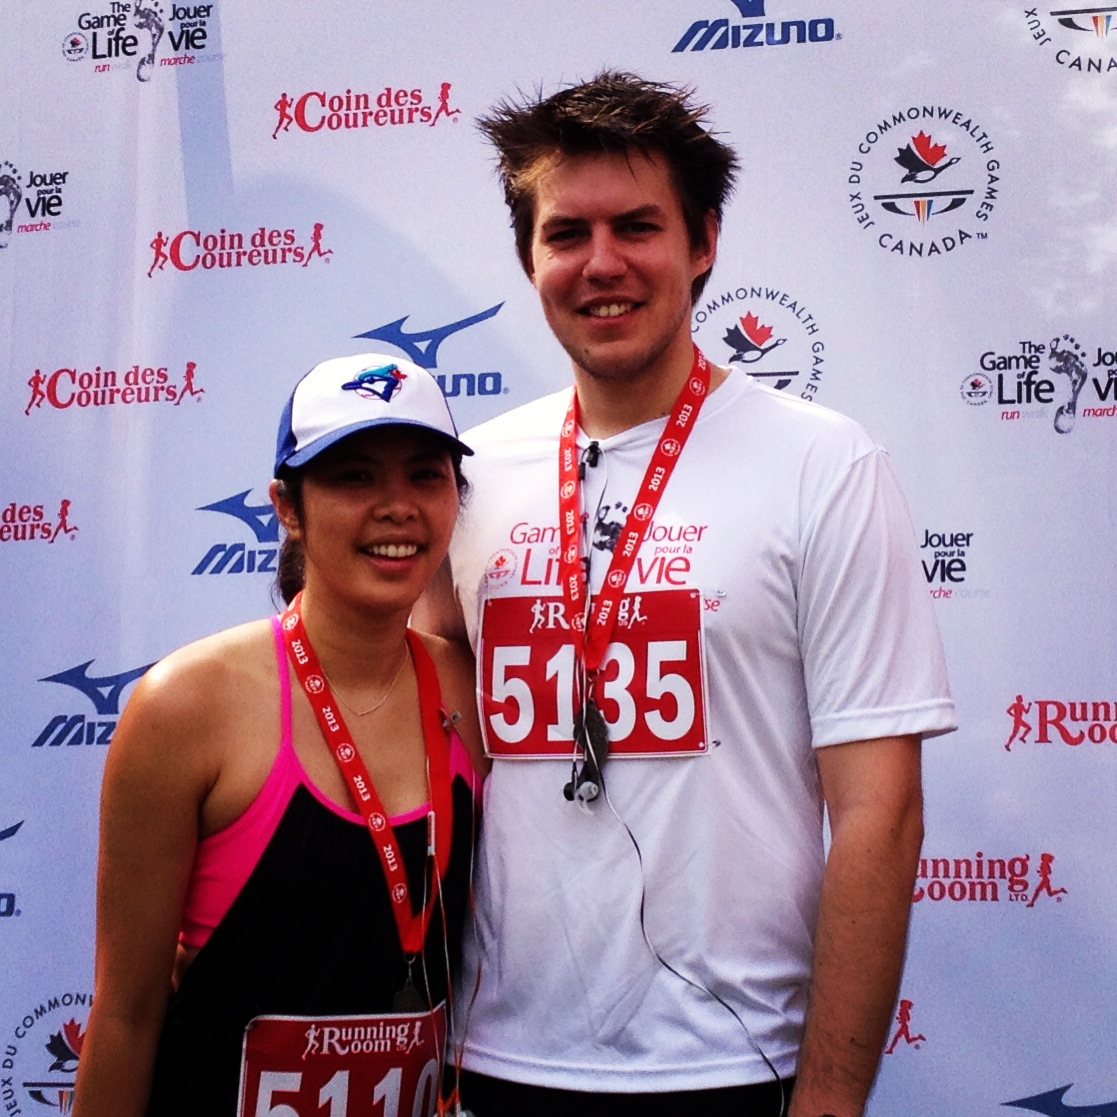 Finishers! Chris and I at the Game of Life 10k Ottawa